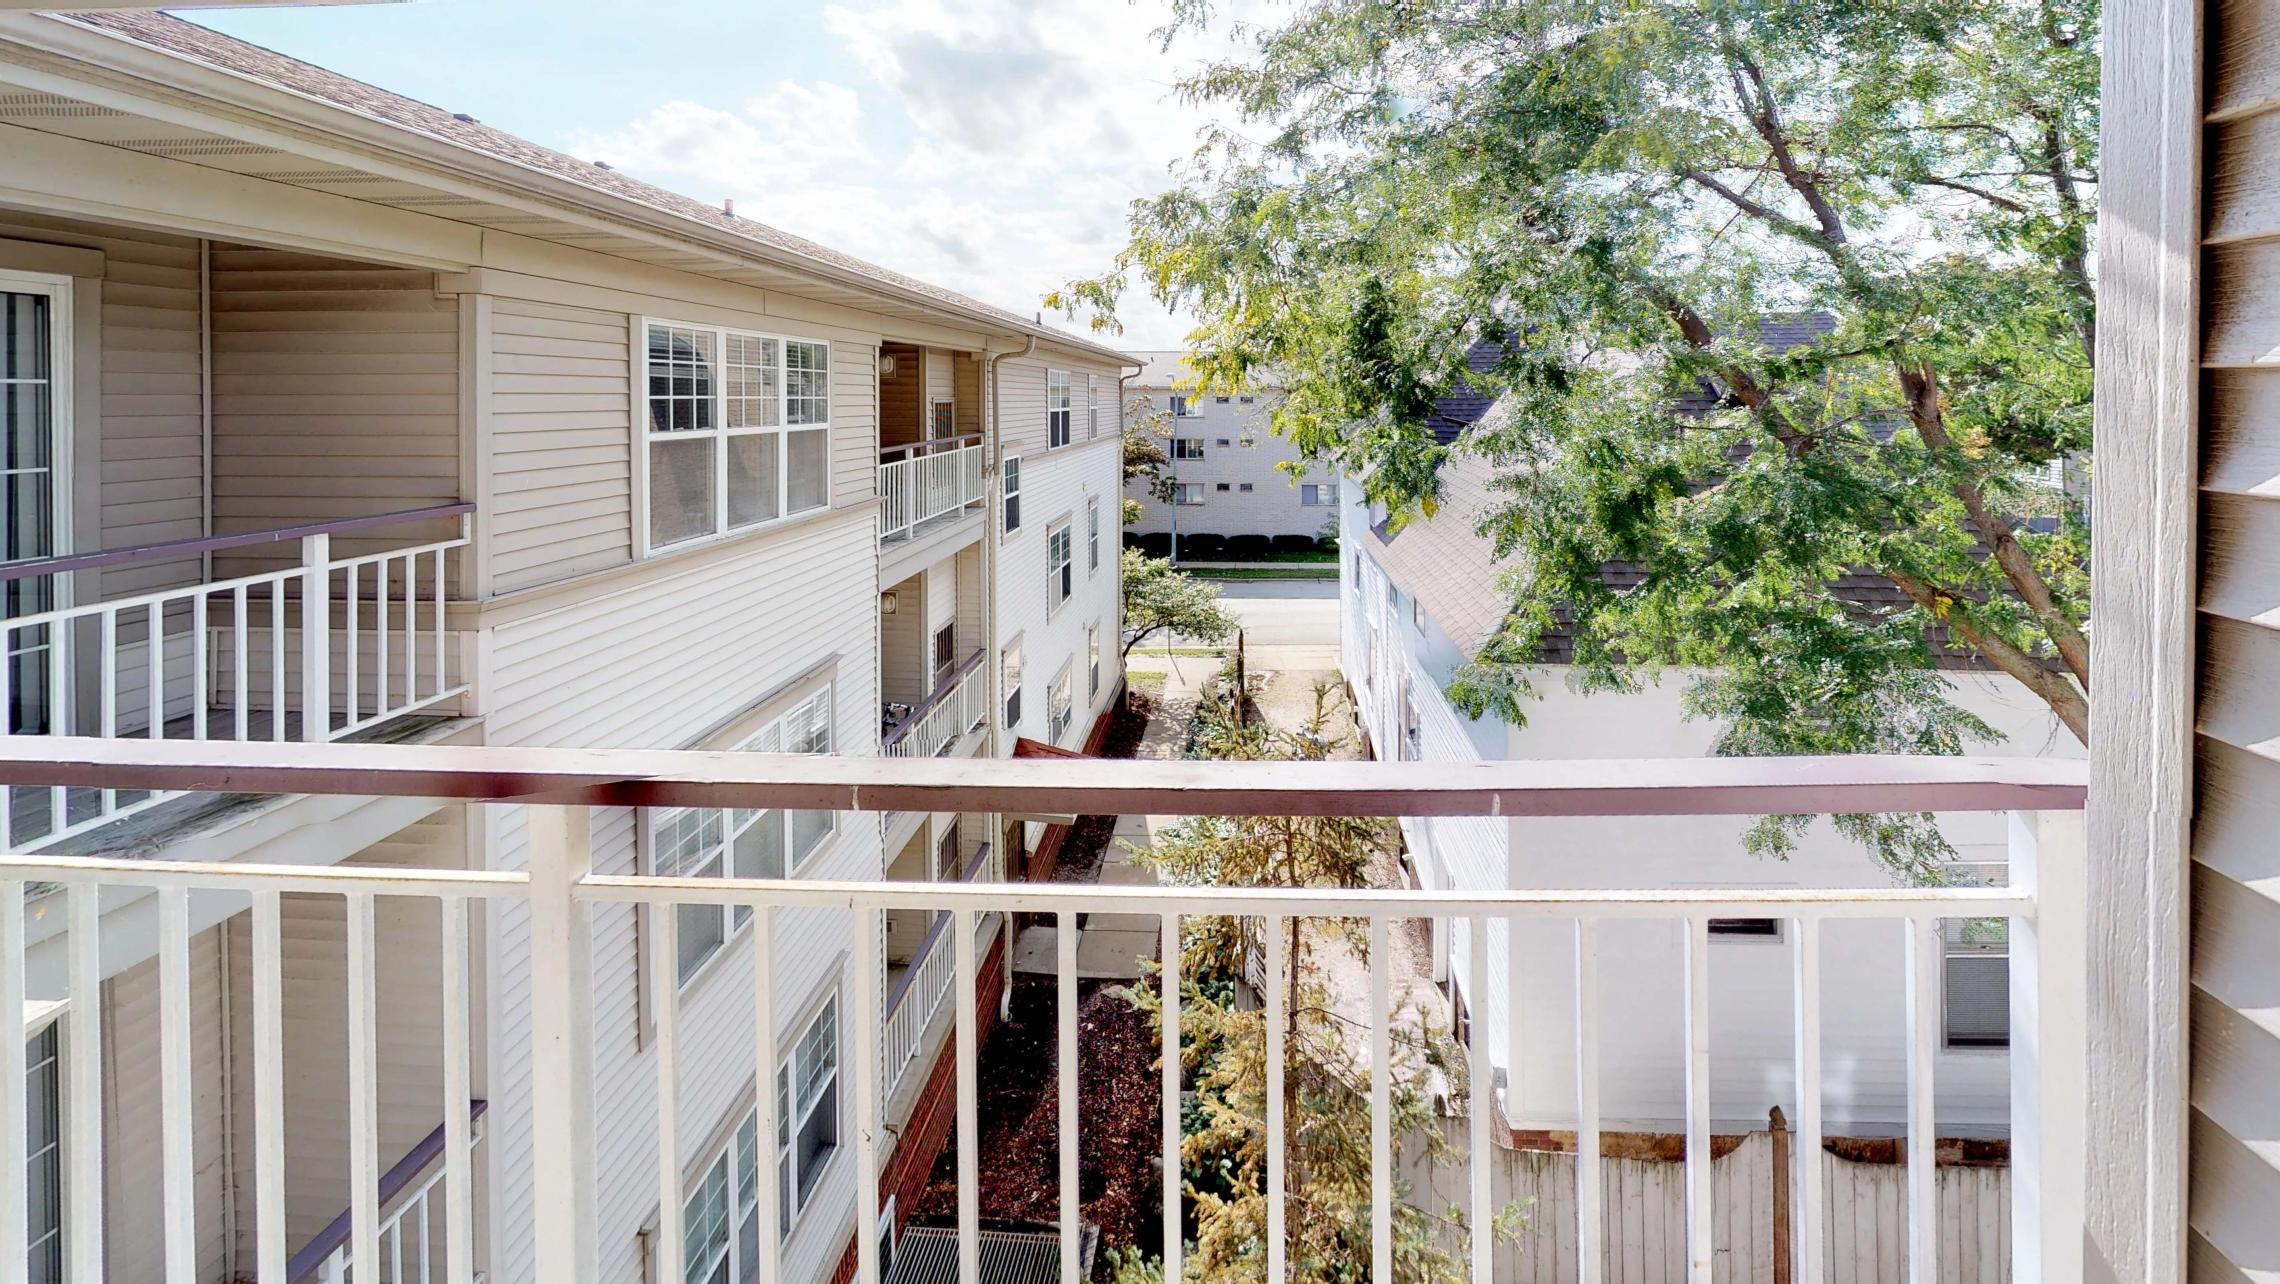 Wilson-Bay-Apartment-303-One-Bedroom-Downtown-Madison-Balcony-Top-Floor-Vaulted-Ceiling-Living-View